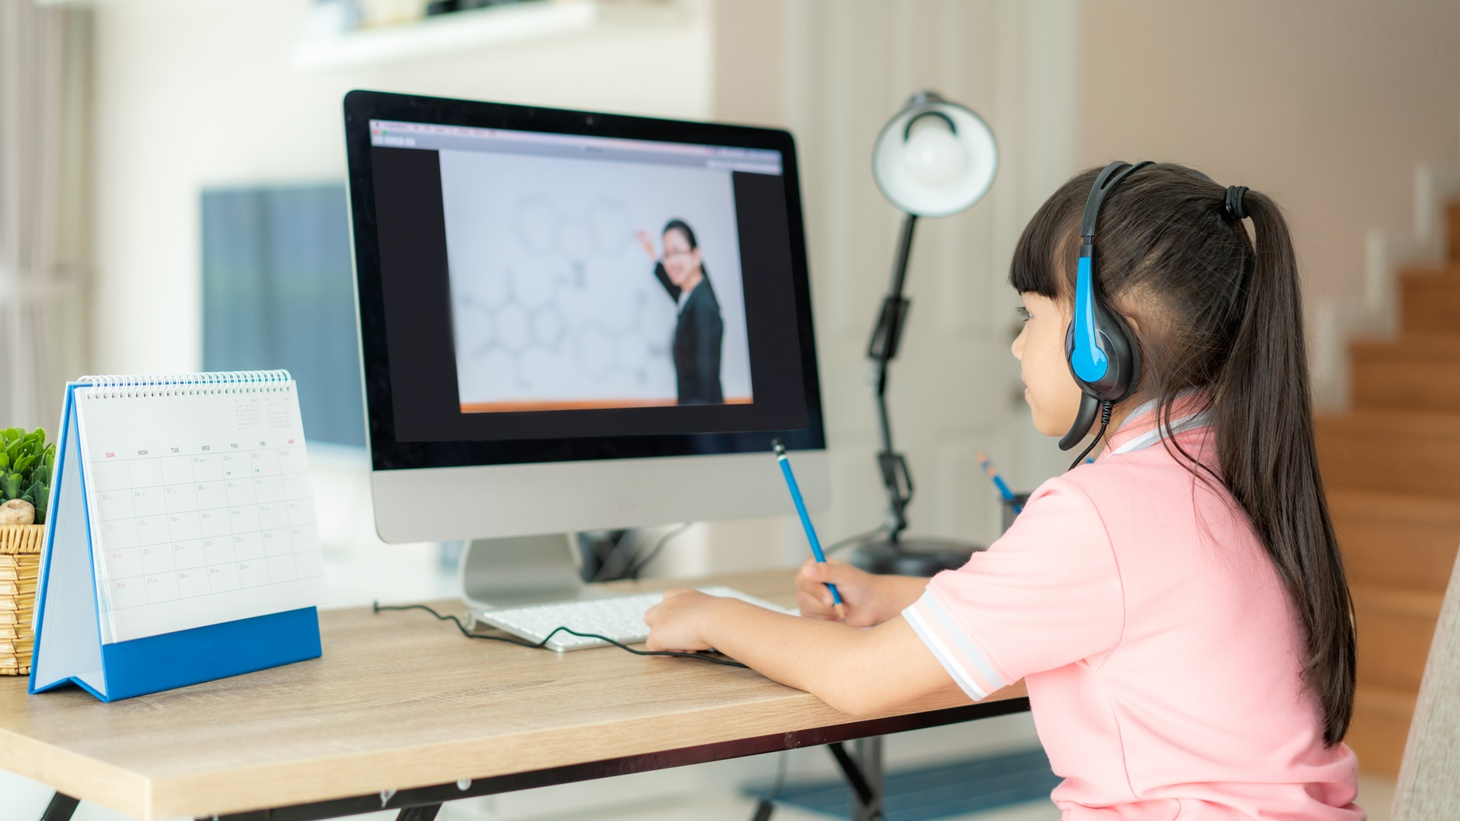 Governor Newsom and state legislators want all K-12 schools to offer an option for remote learning.